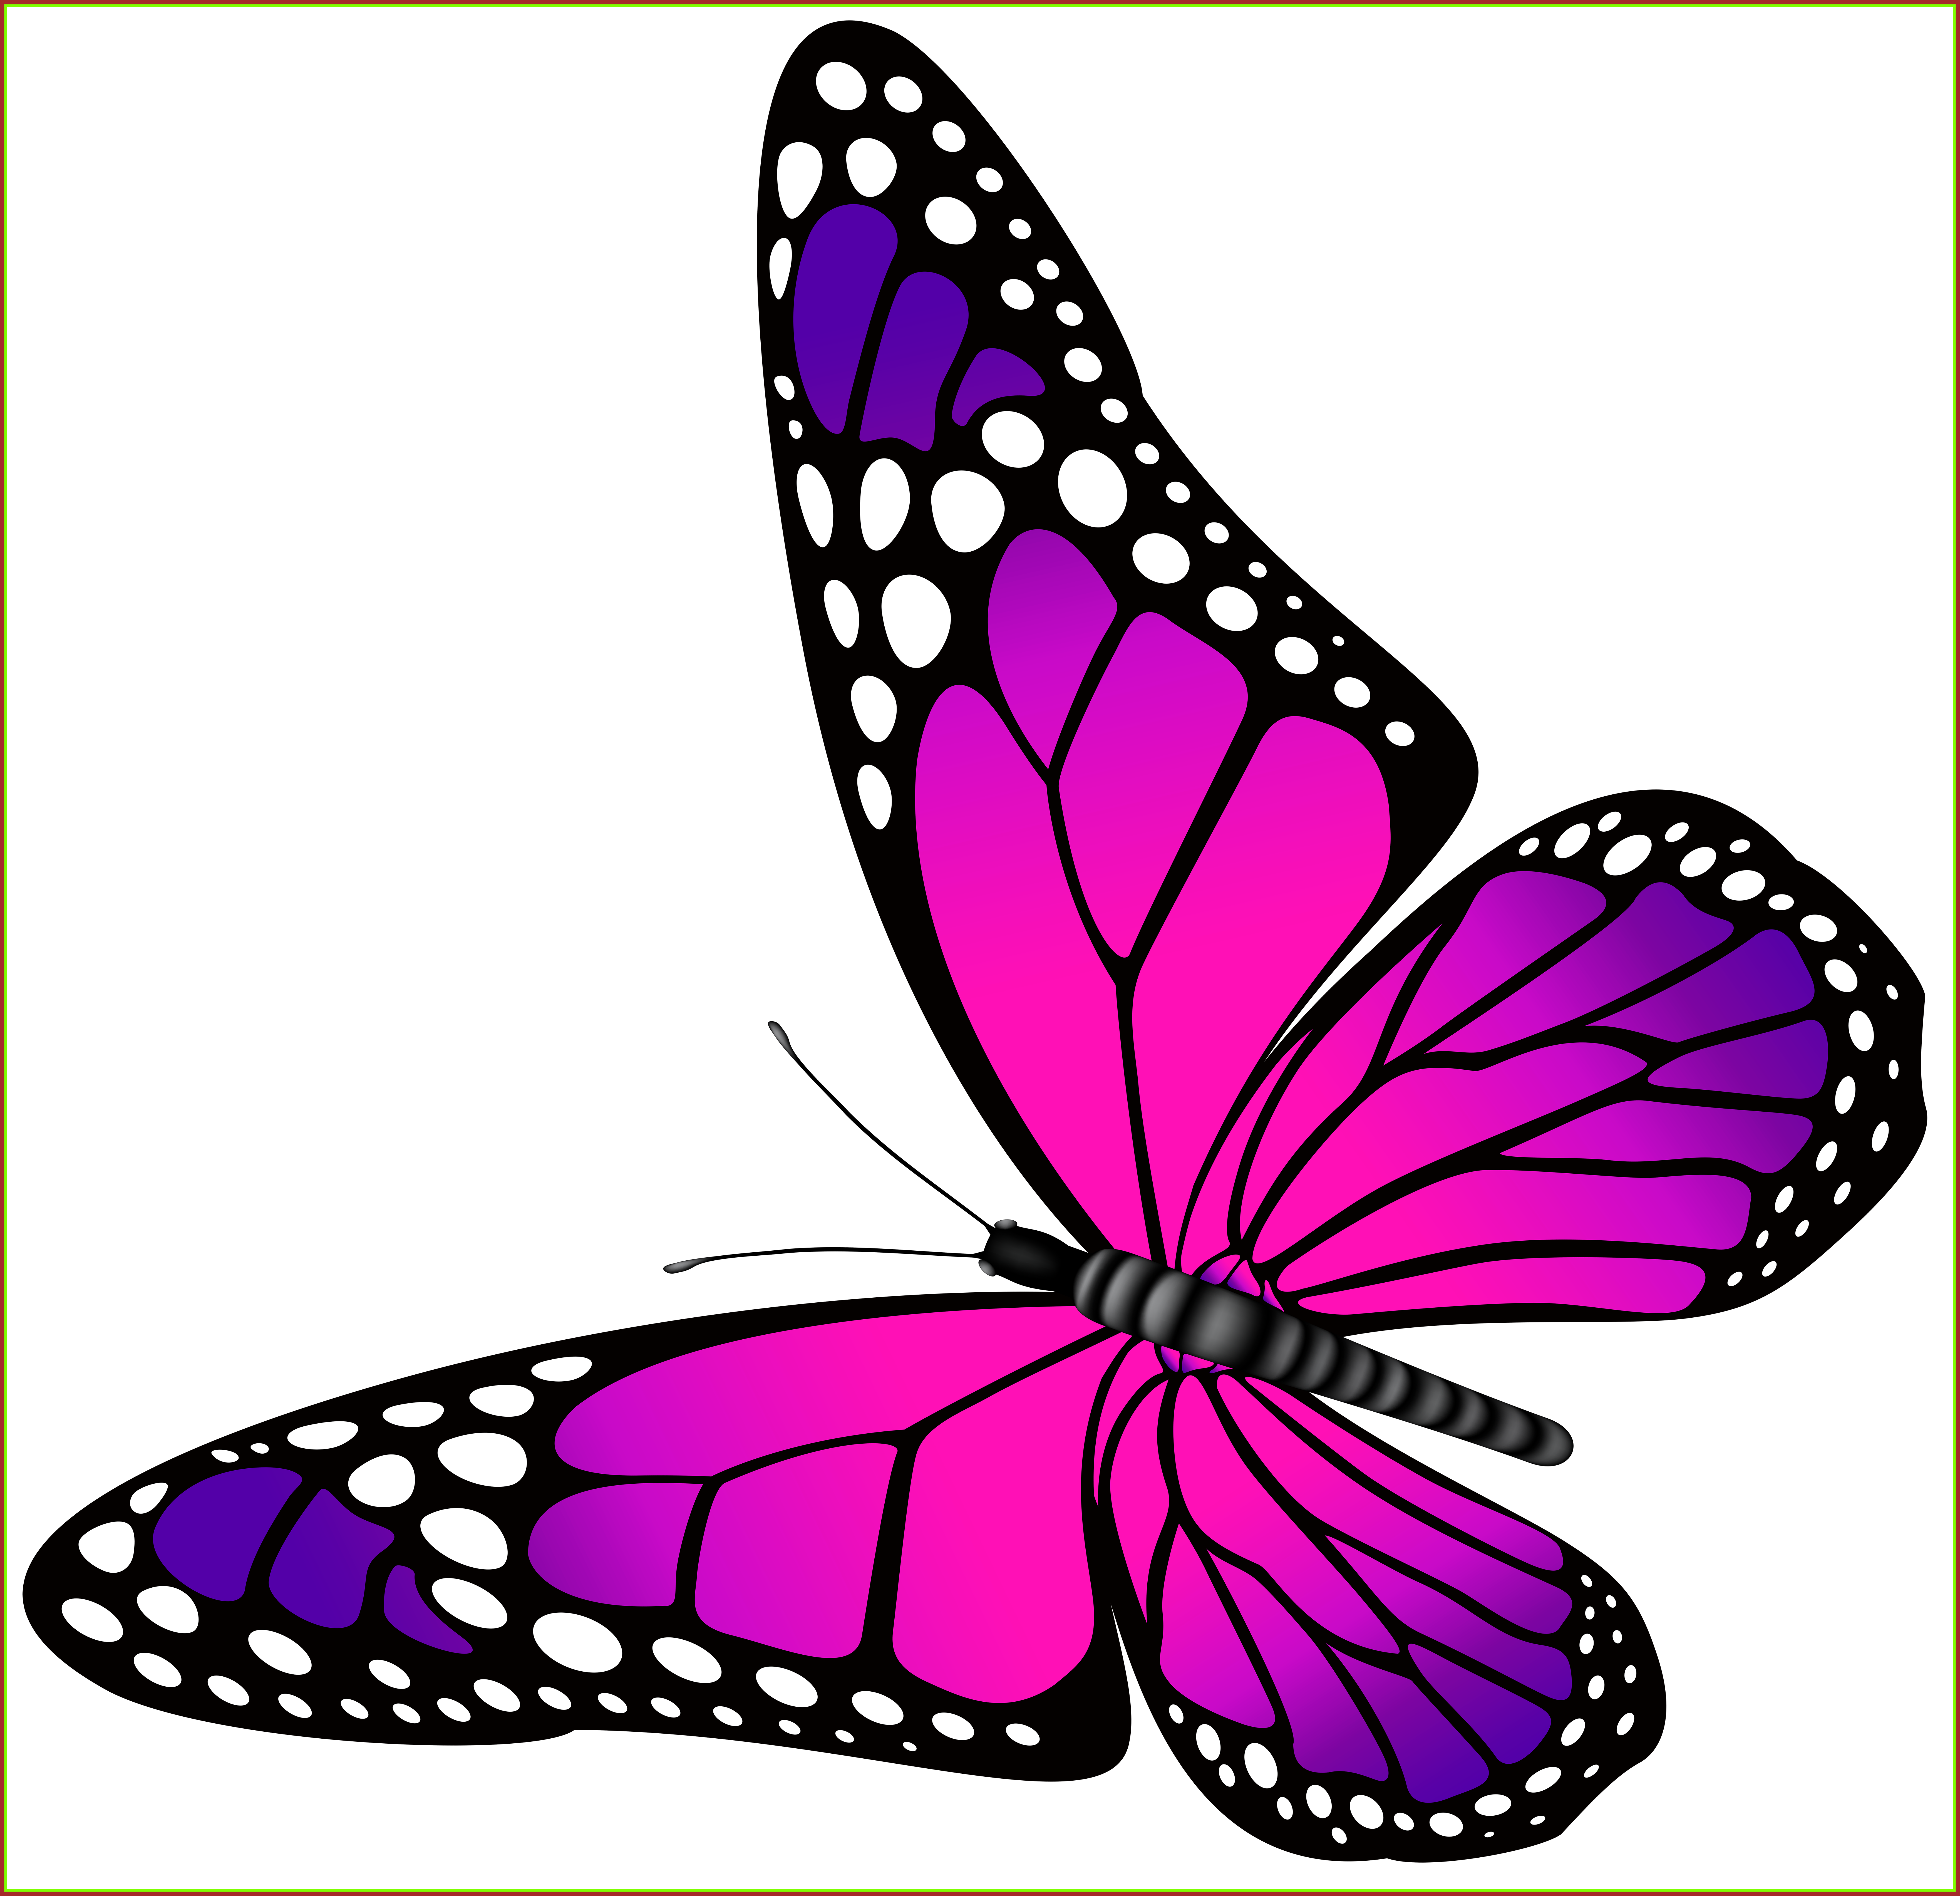 Flying clipart cute, Flying cute Transparent FREE for ...